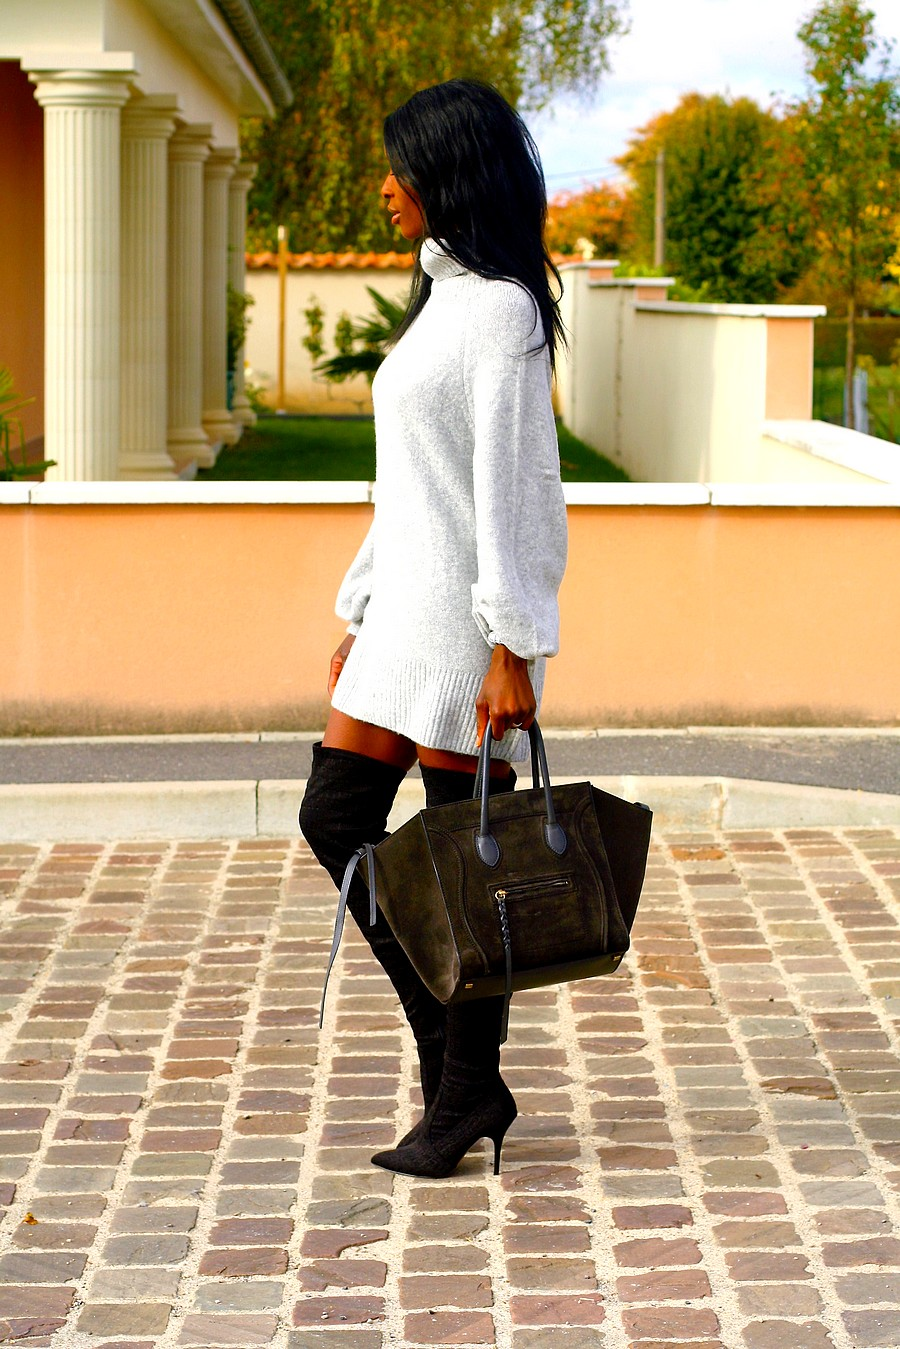 Robe pull x cuissardes styles by assitan blog mode french style blogger Celine fashion street style